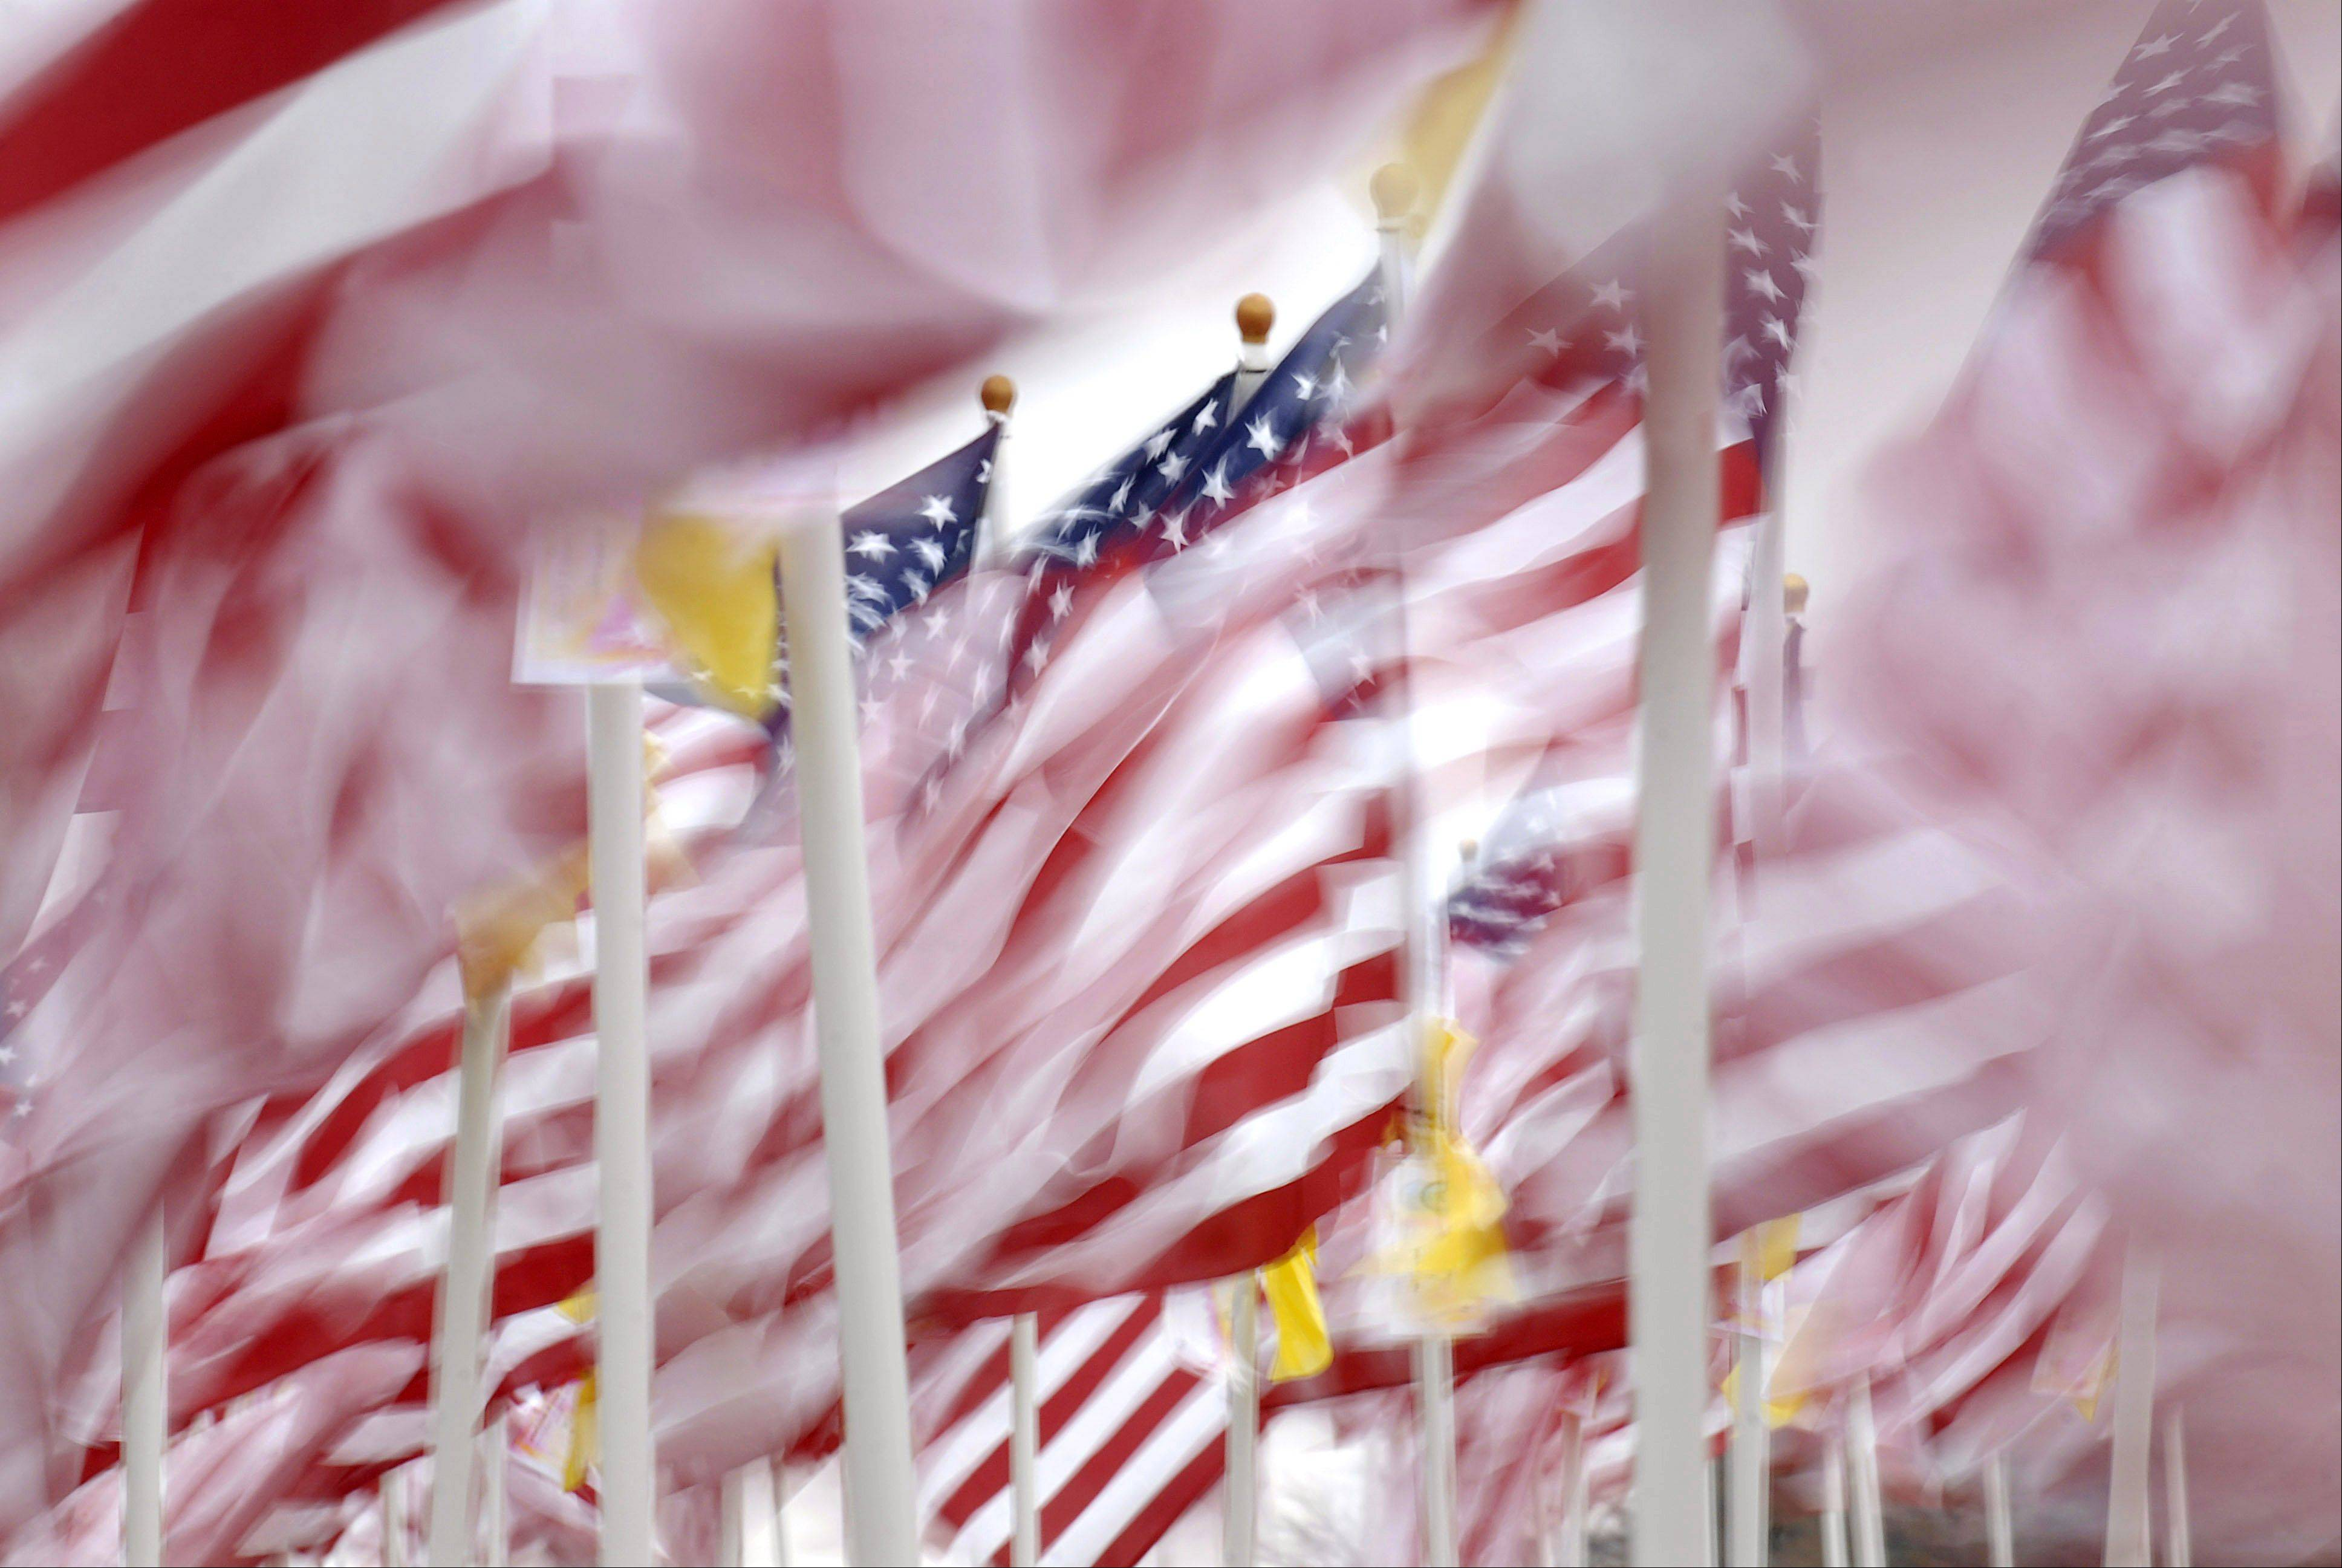 Over three hundred American flags representing fallen soldiers since 9/11 whip in the wind while on display along Route 47 near Oak Creek Highway in Huntley for Veterans Day.